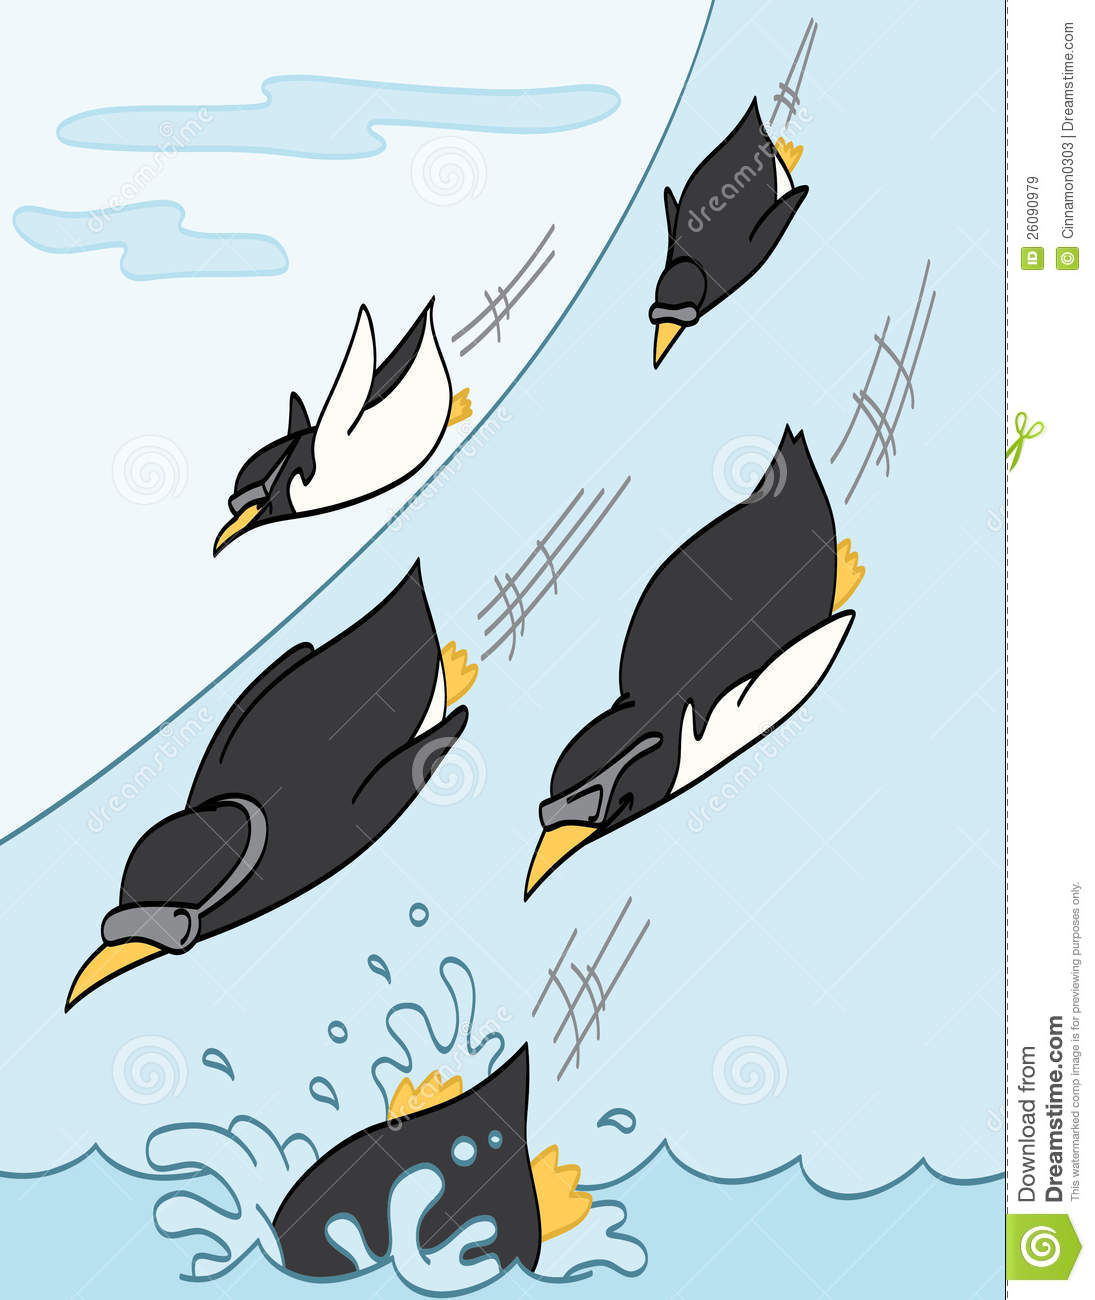 Penguins Sliding Downhill Royalty Free Stock Images   Image  26090979